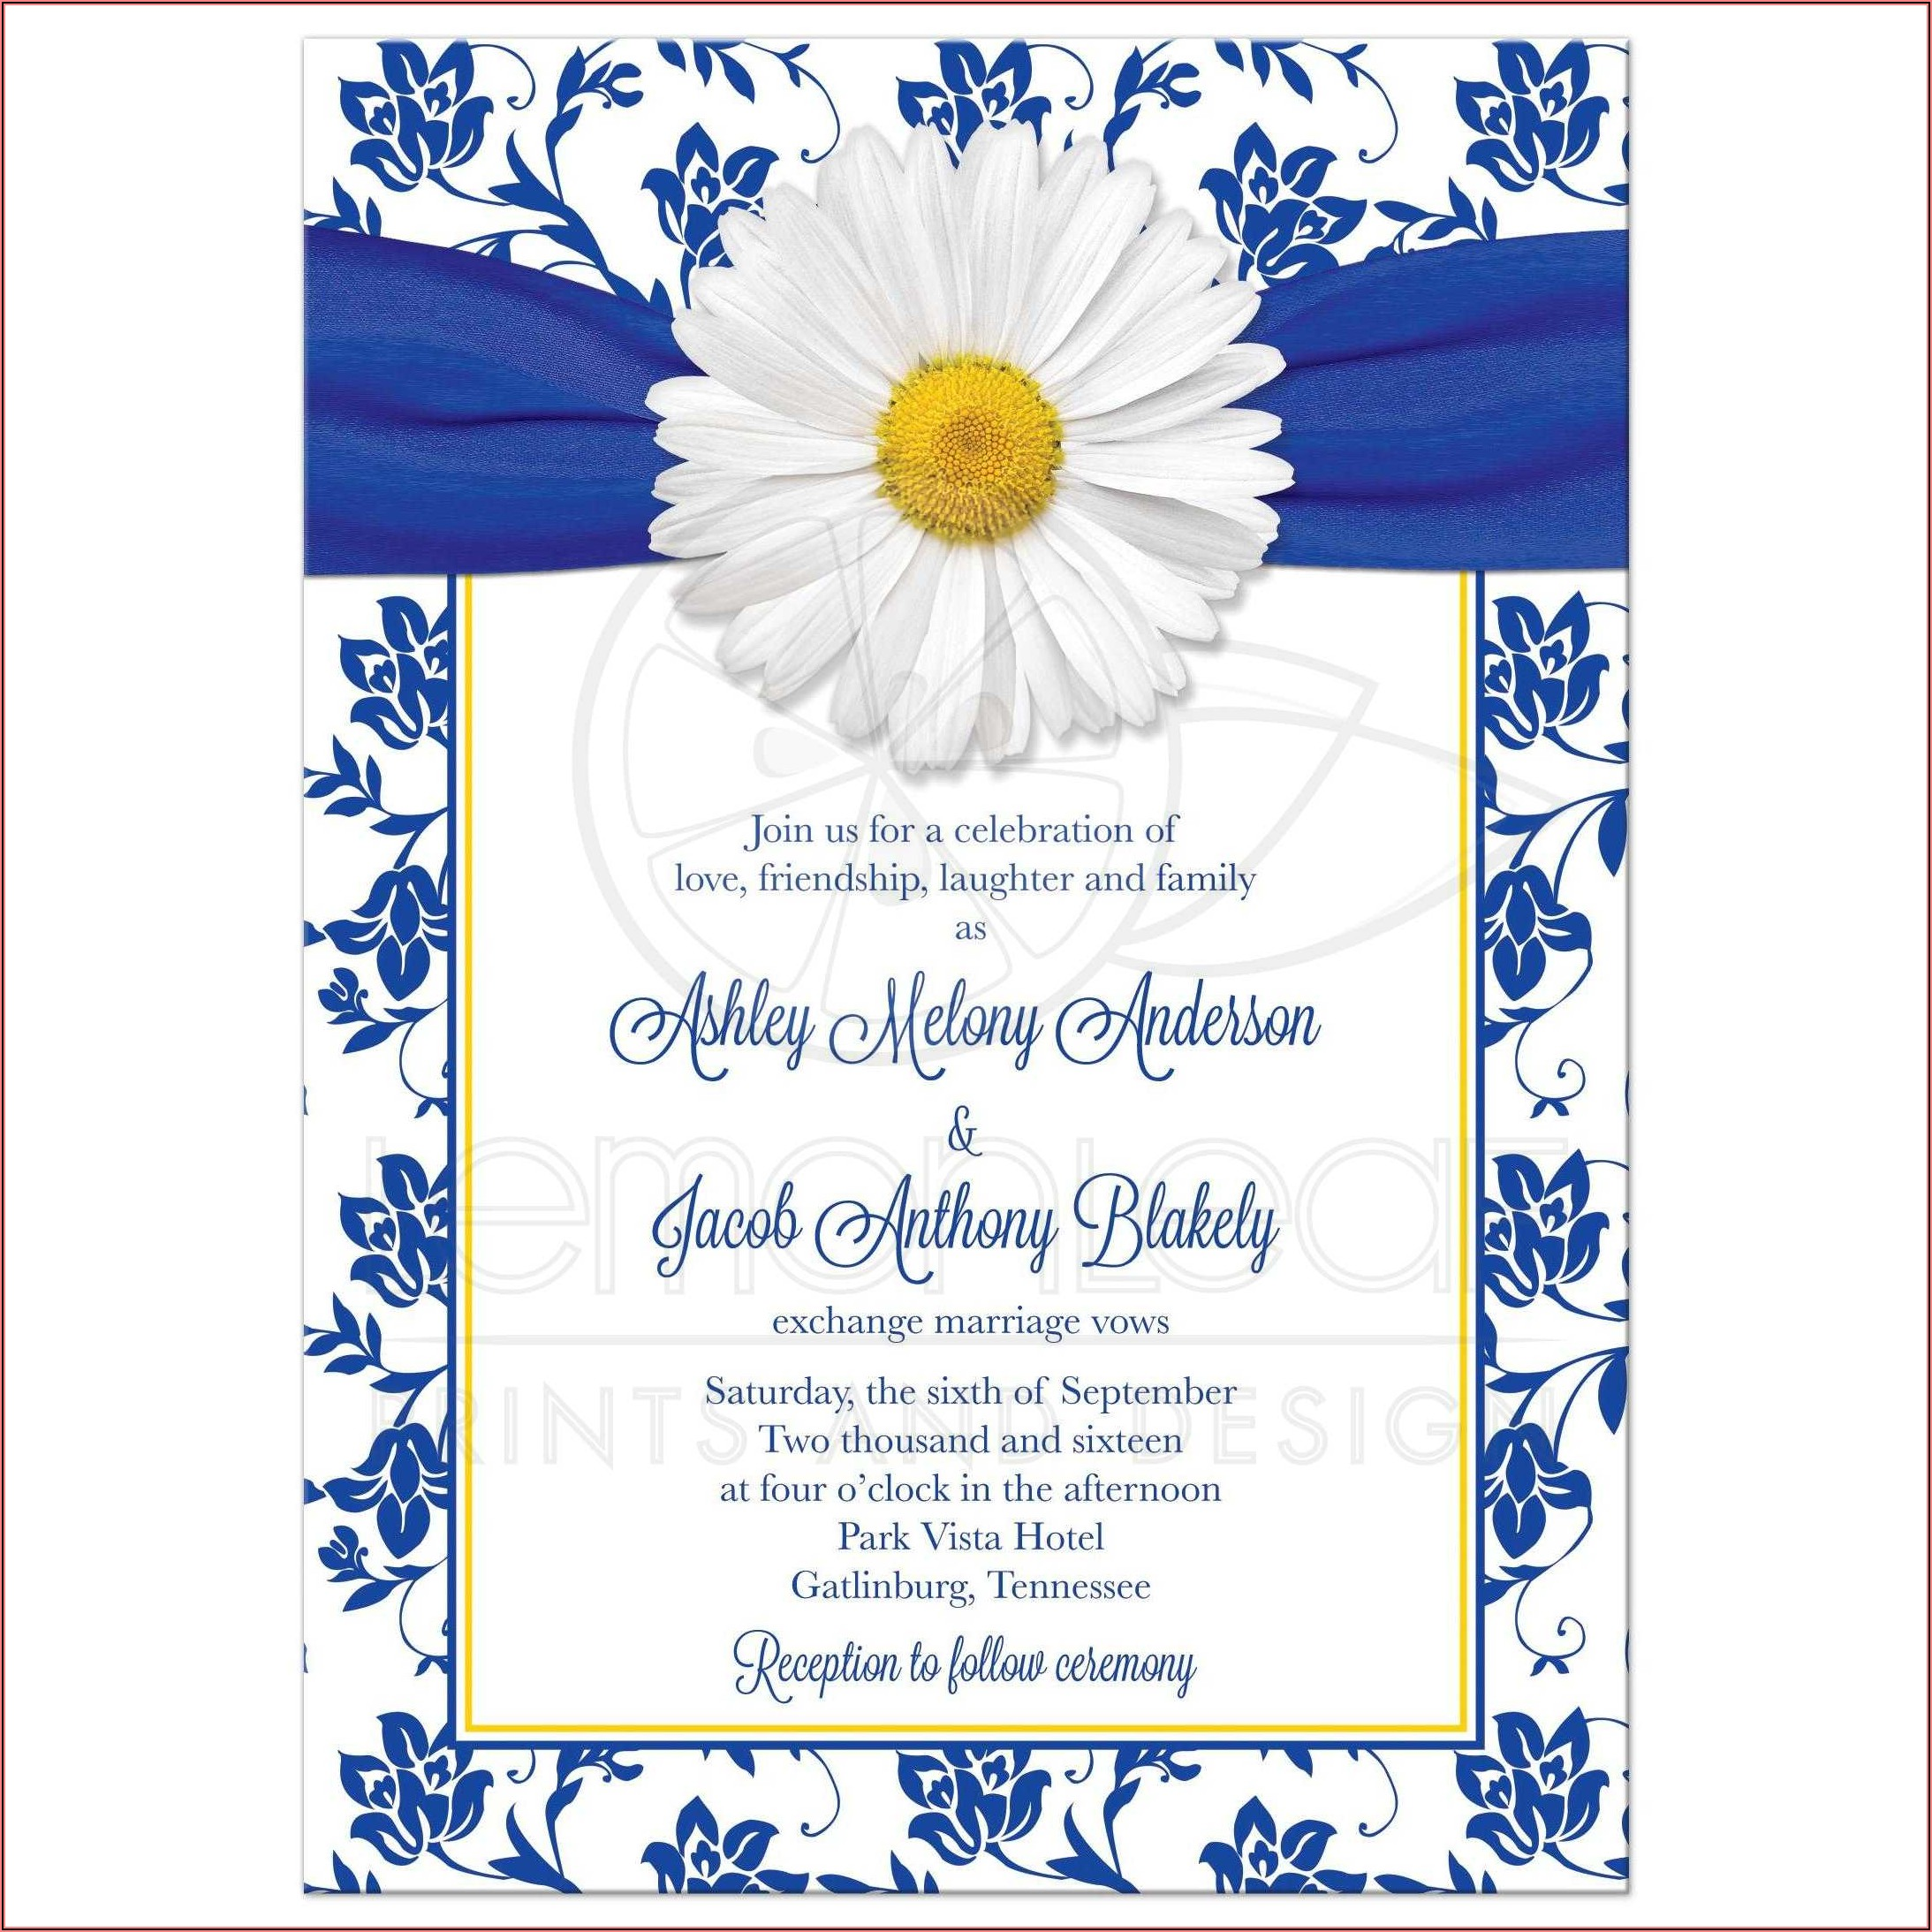 Royal Blue And White Wedding Invitation Cards